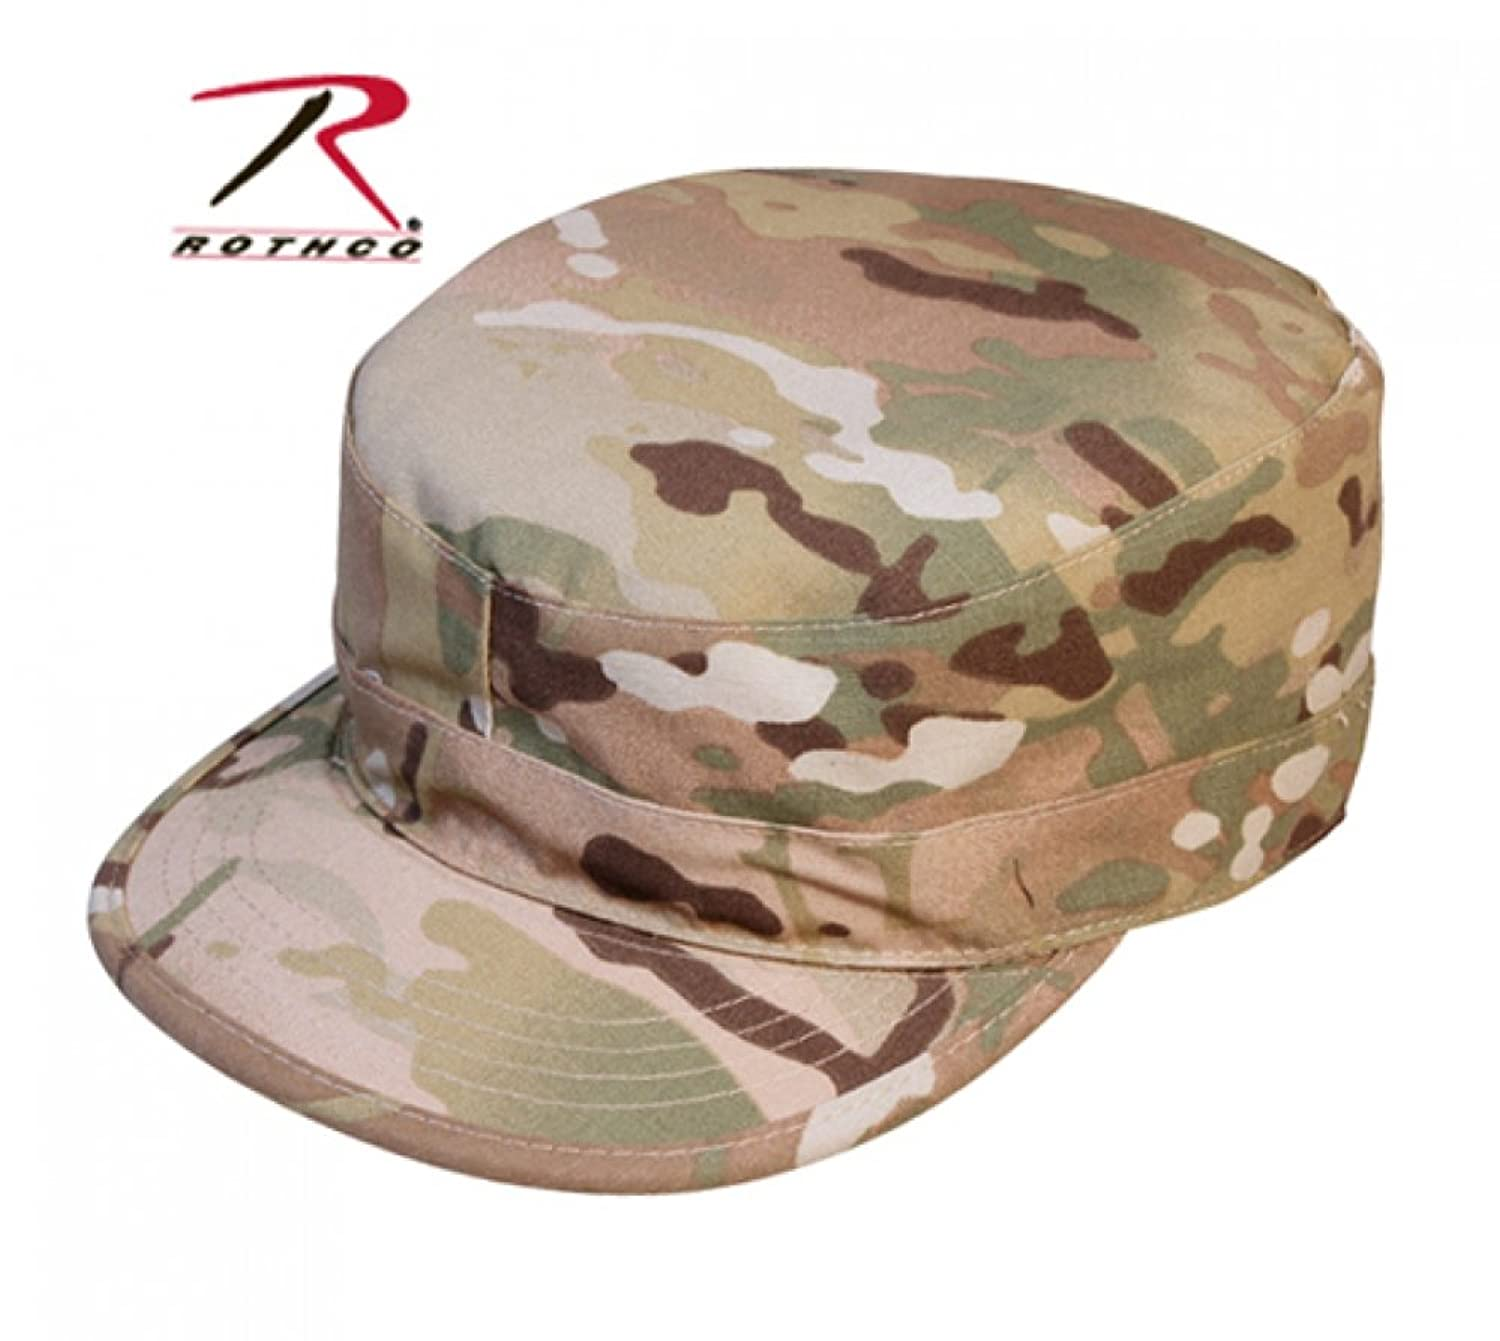 Rothco Multi Cam Military Rip-Stop Map Pocket Patrol Ranger Fatigue Cap